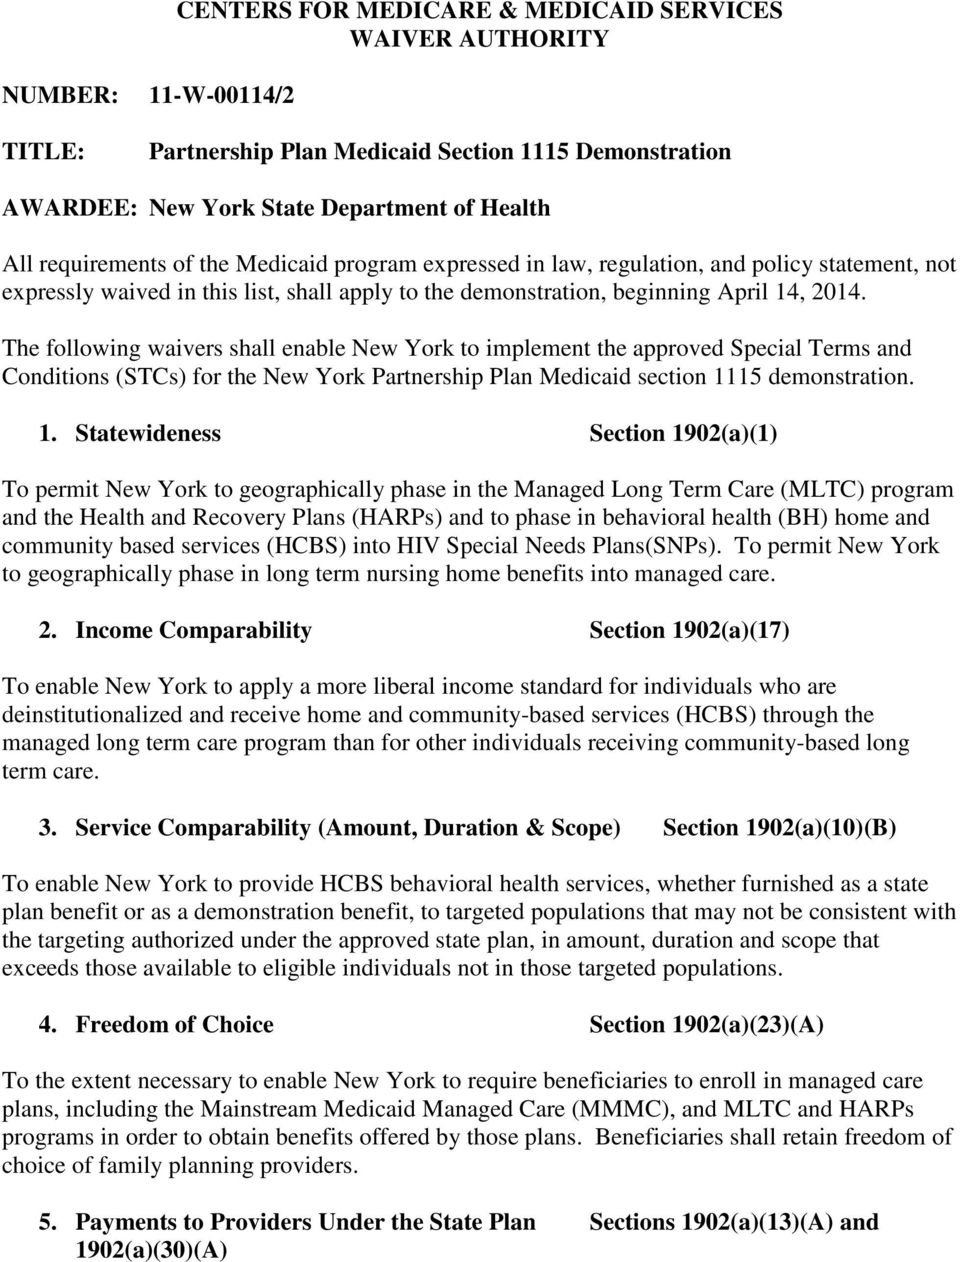 The following waivers shall enable New York to implement the approved Special Terms and Conditions (STCs) for the New York Partnership Plan Medicaid section 11